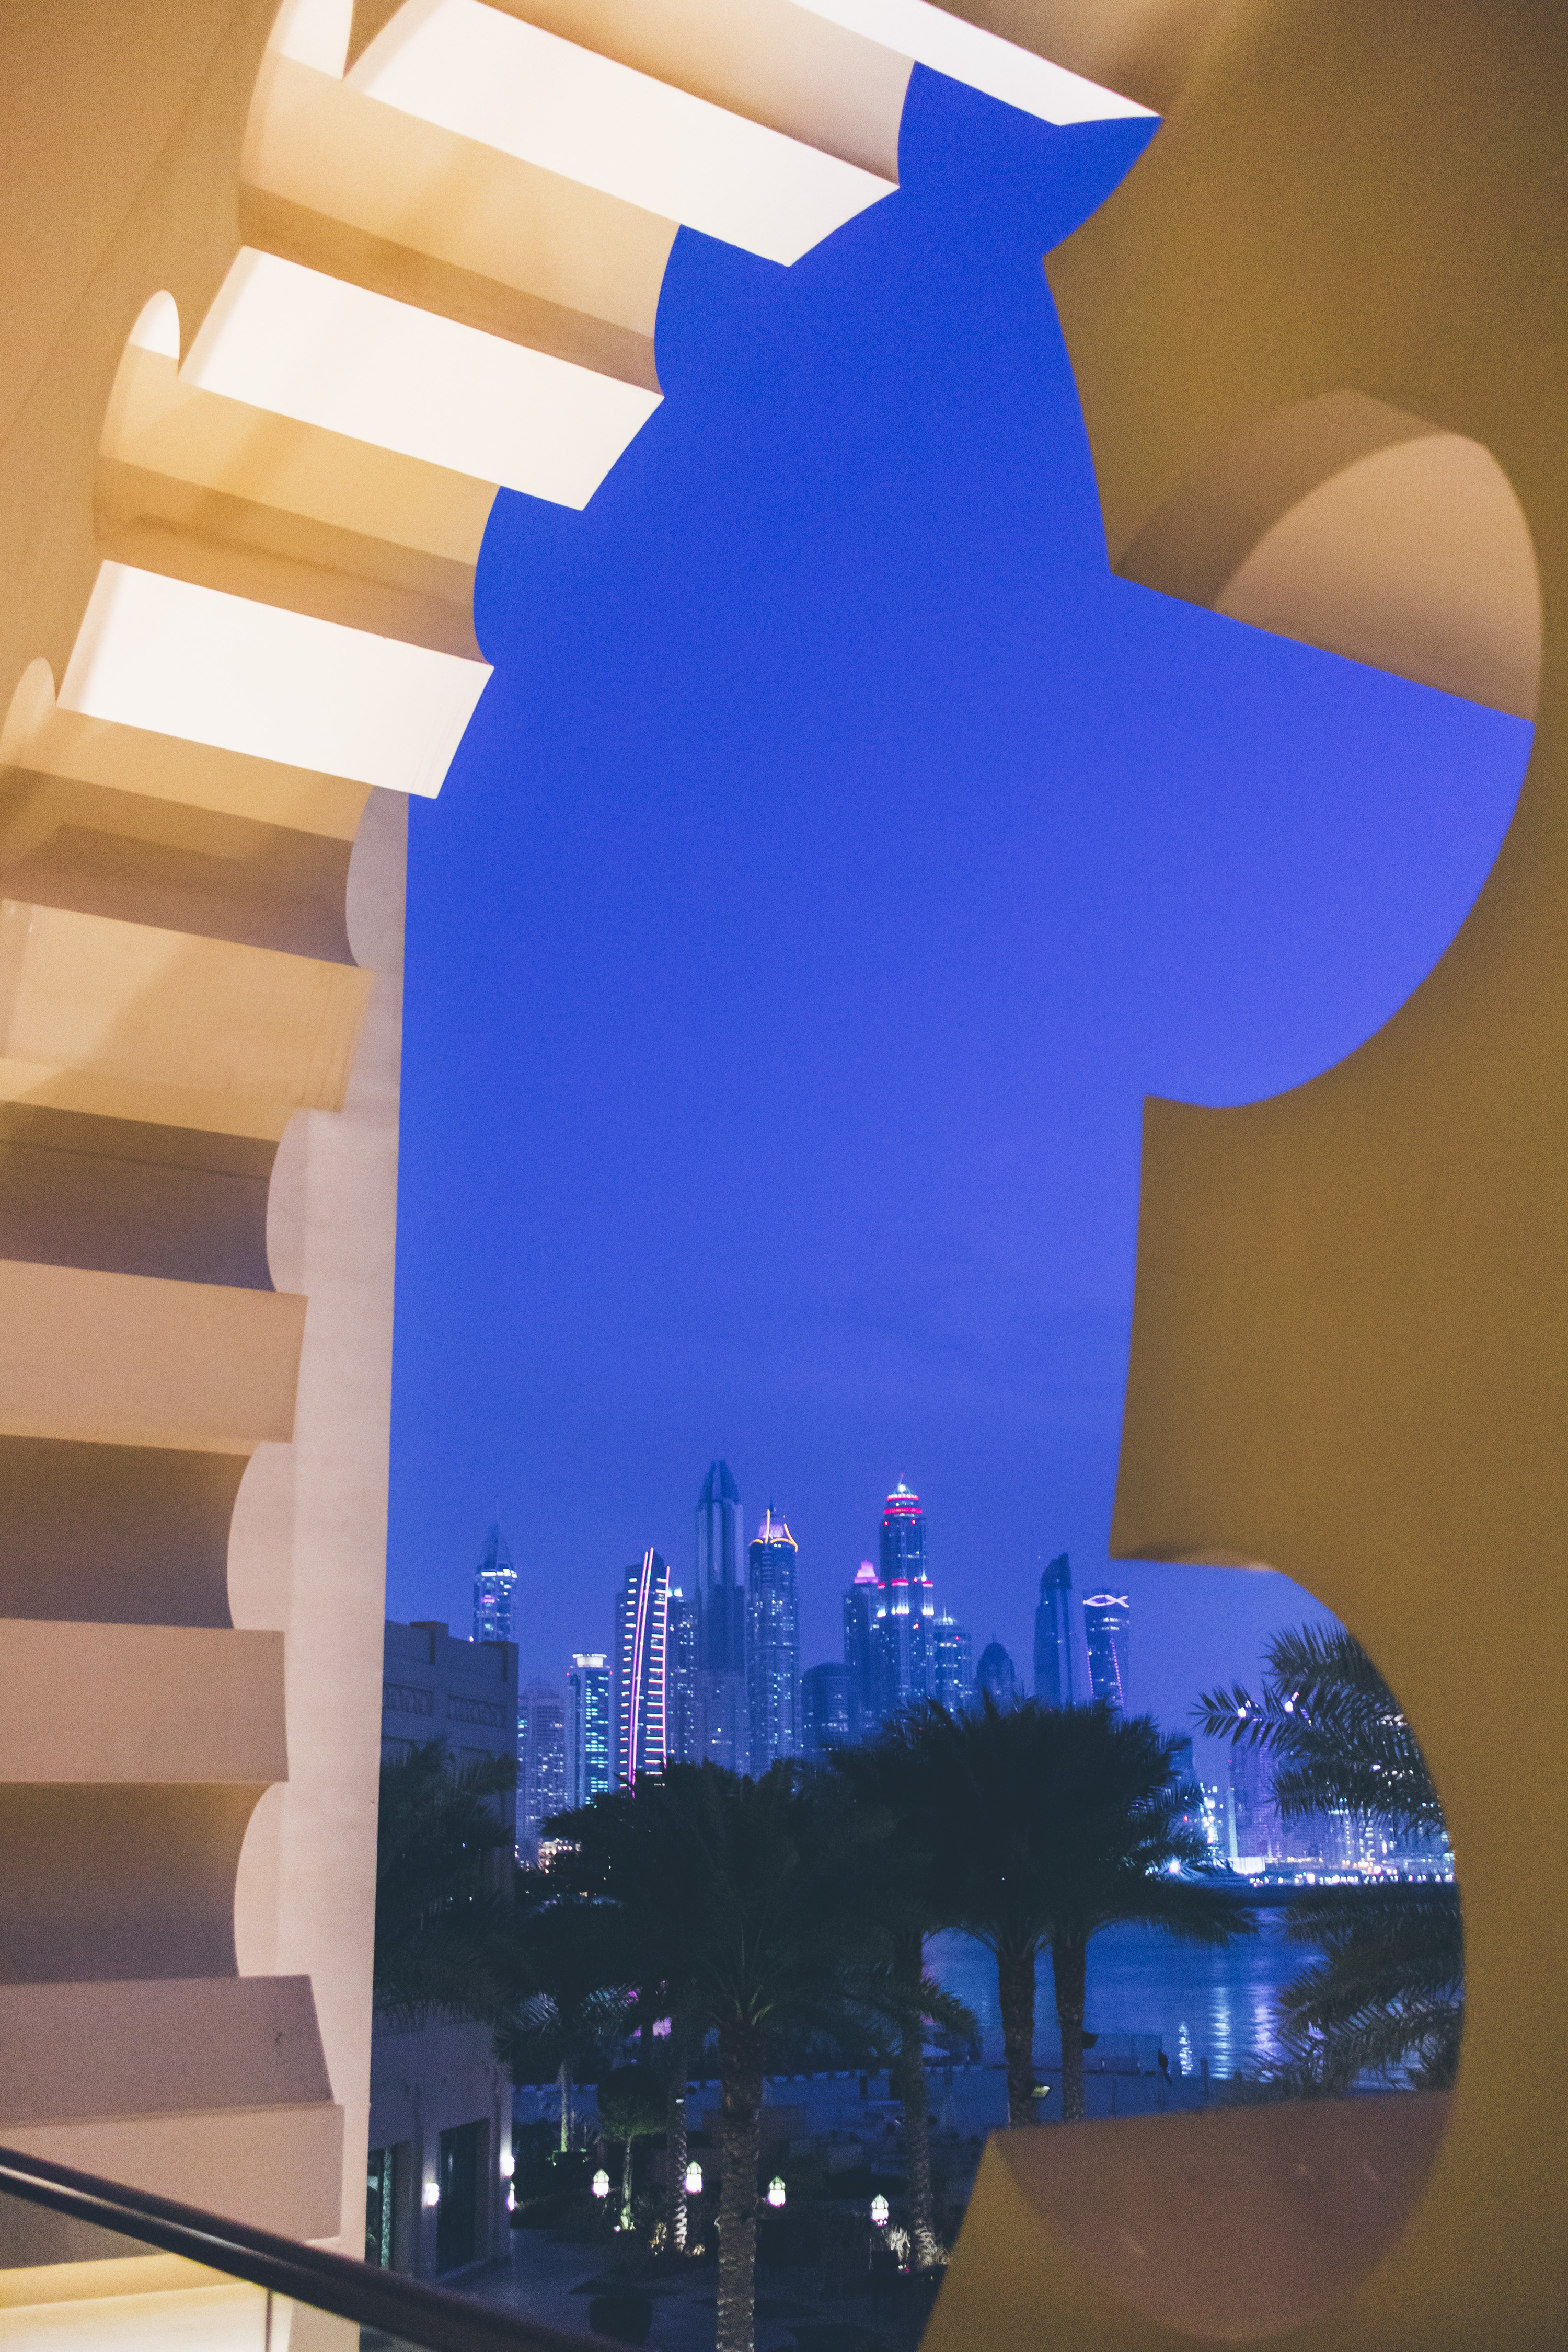 Andrea_Berlin_Fairmont_the_palm_Dubai-2249